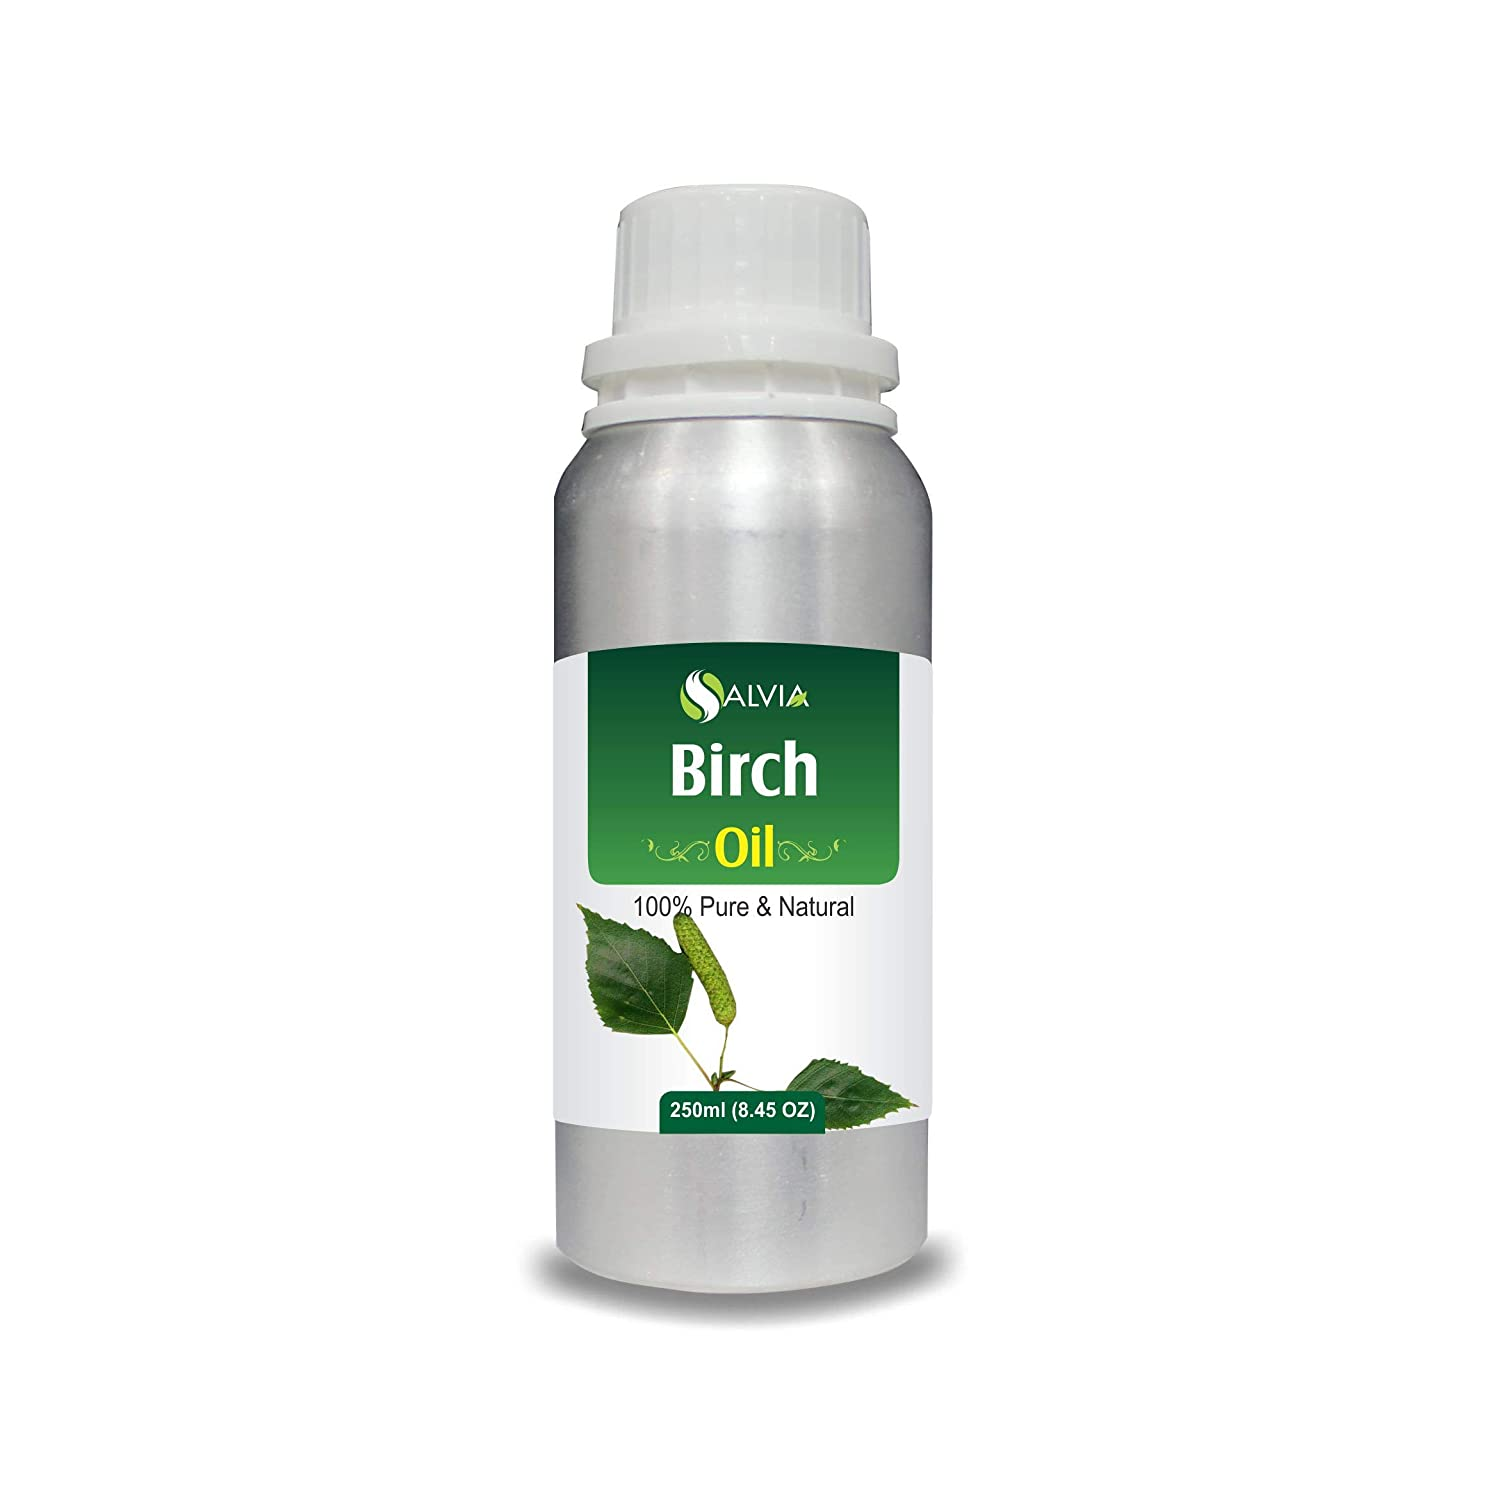 【半額】 Birch Essential Oil (Betula pendula Betula alba) ML 250 100% Pure 250 & Natural - Undiluted Uncut Therapeutic Grade - Aromatherapy Oil - 250 ML 250 ML B07JRGV1QM, REZAR:4c4cfce4 --- a0267596.xsph.ru